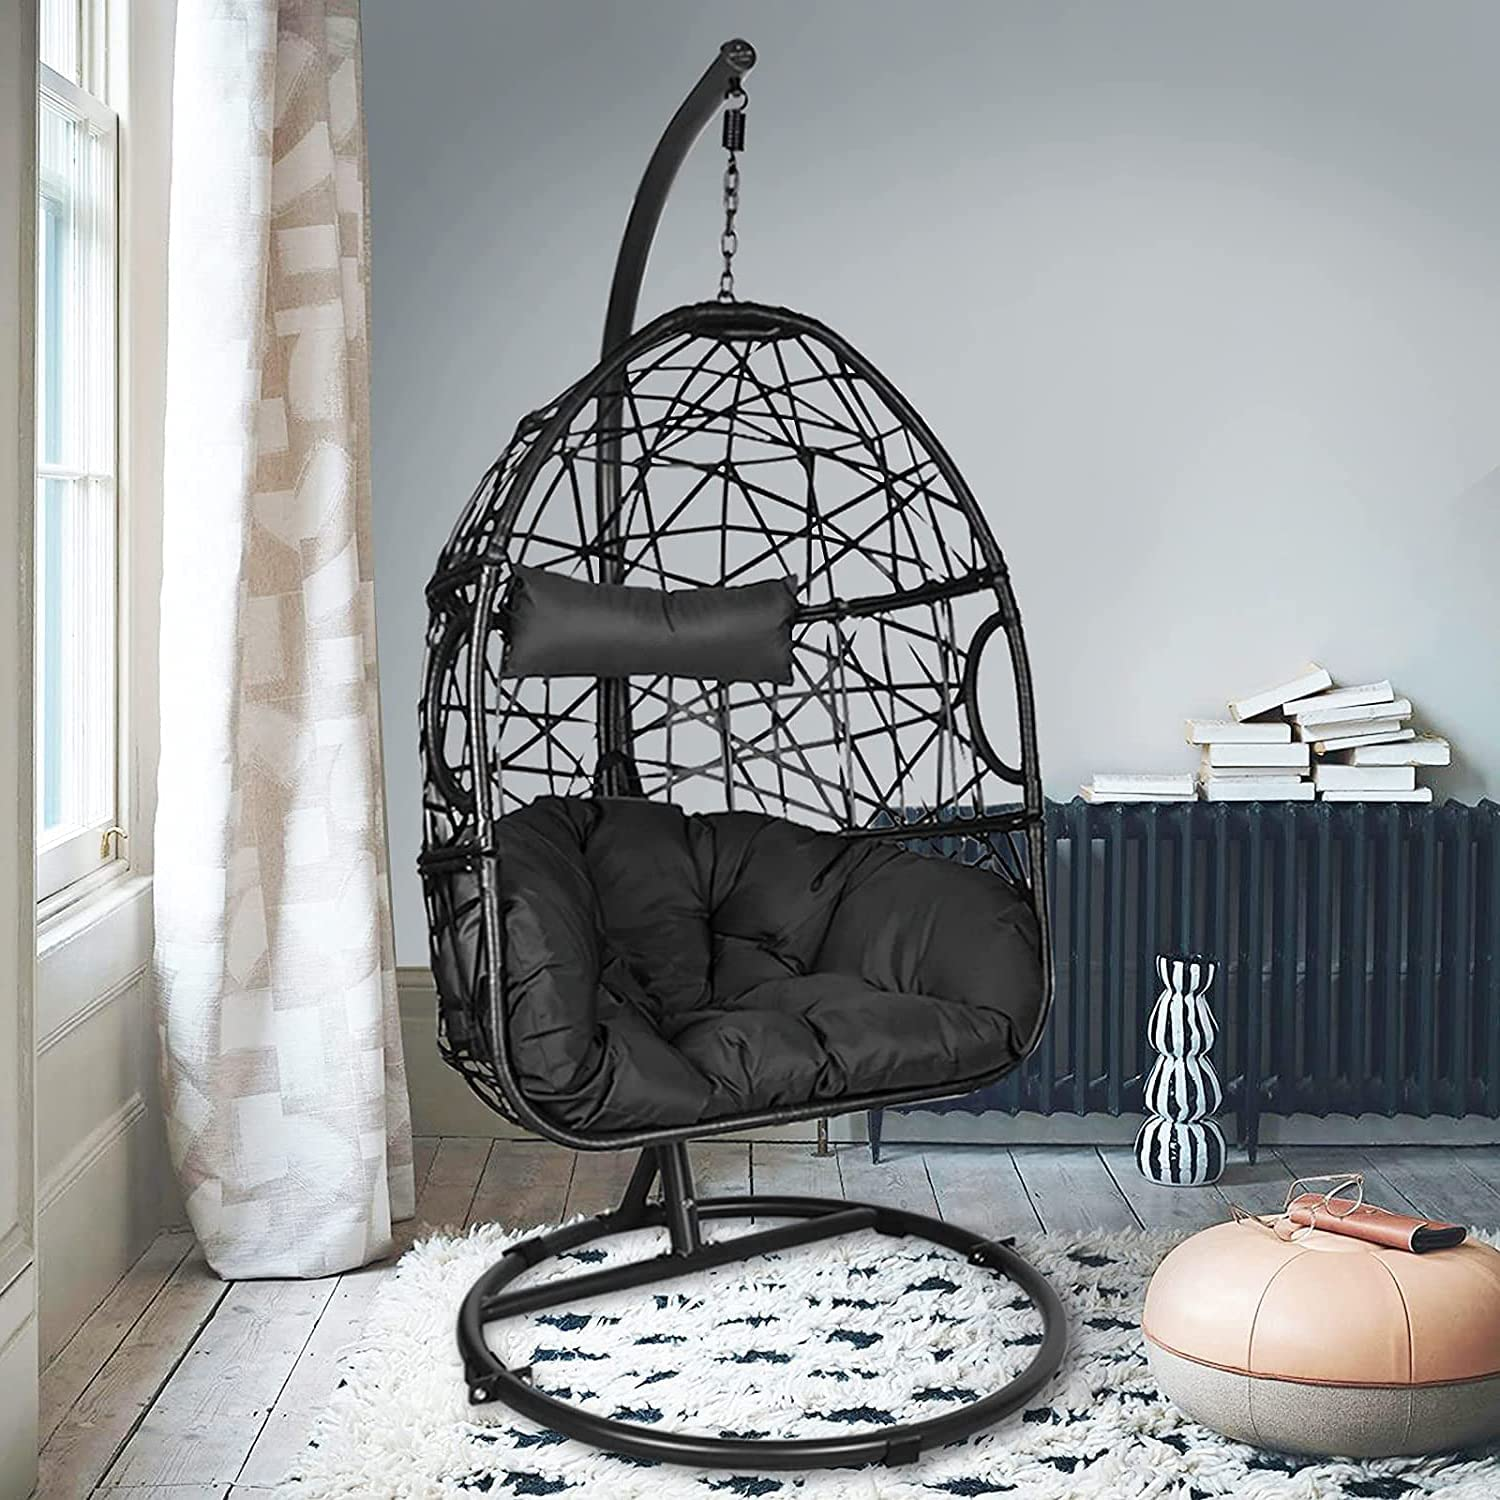 Action Club Egg Chair With Stand, Outdoor Swing Seat With Stand